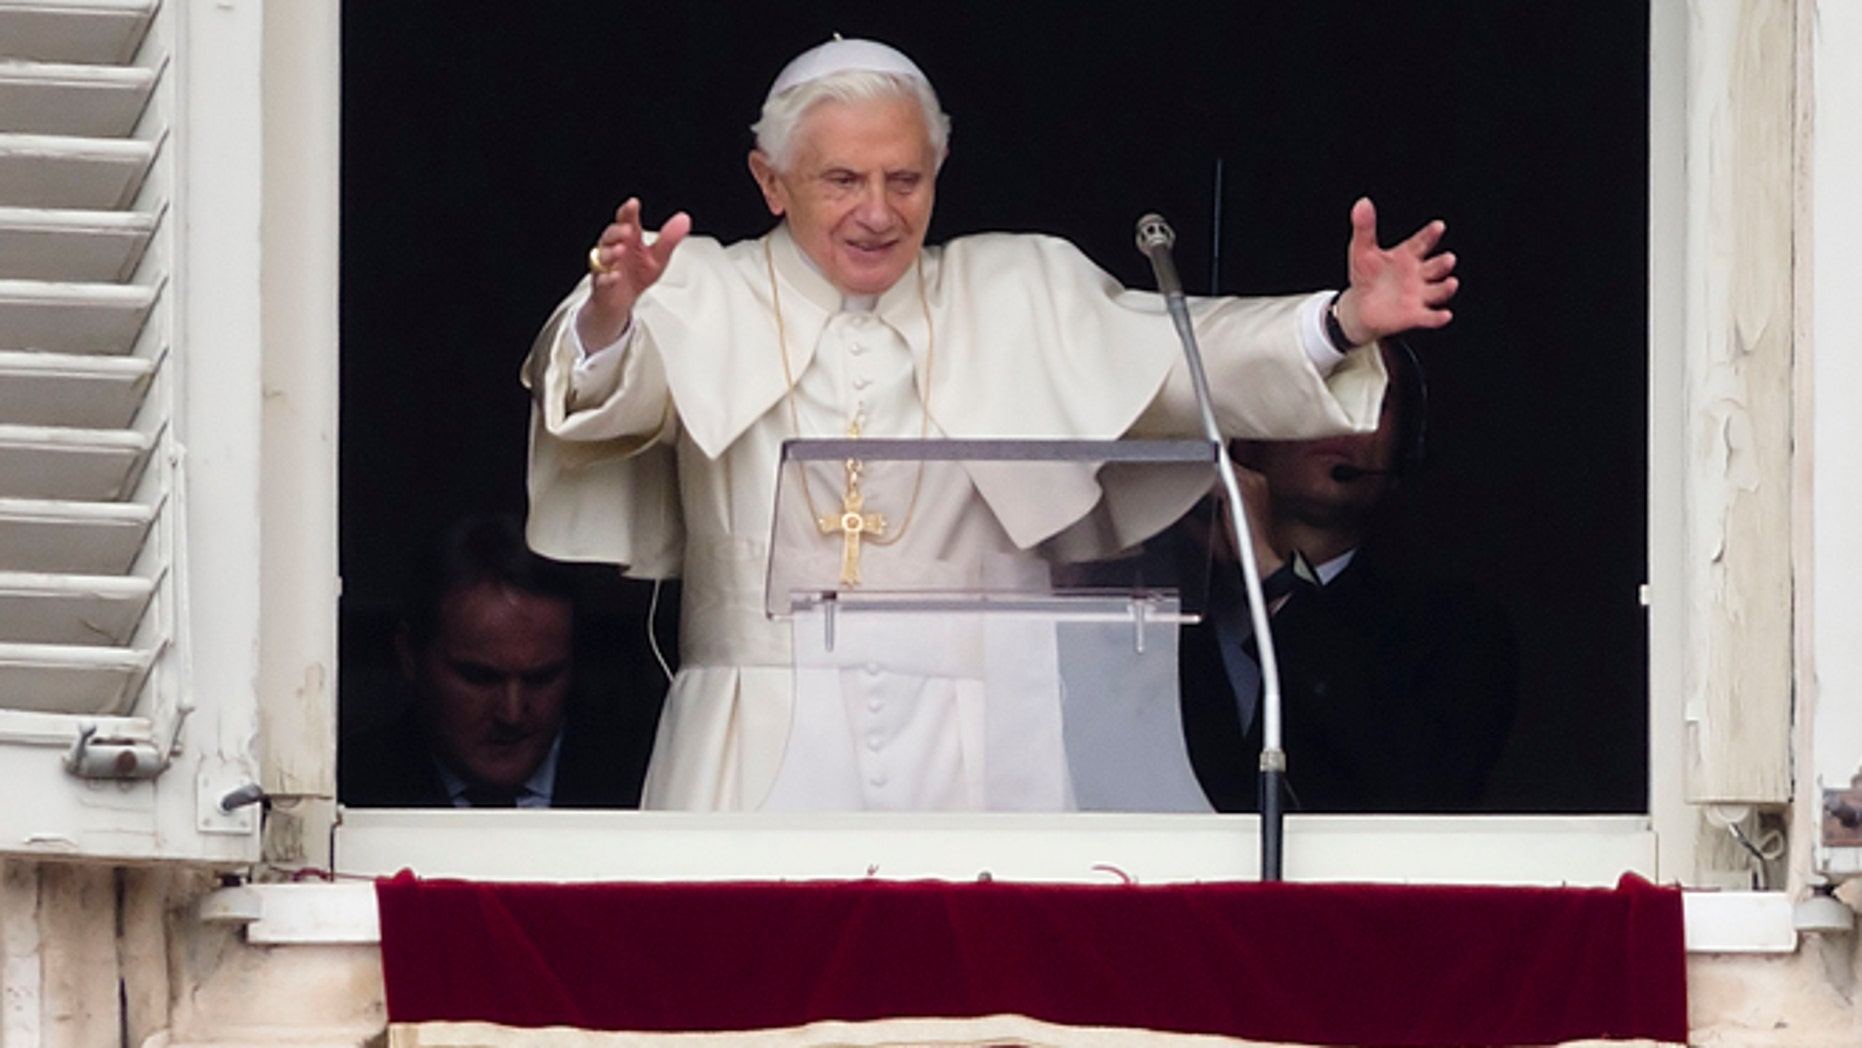 Feb. 24, 2013: Pope Benedict XVI delivers his blessing during his last Angelus noon prayer, from the window of his studio overlooking St. Peter's Square, at the Vatican.